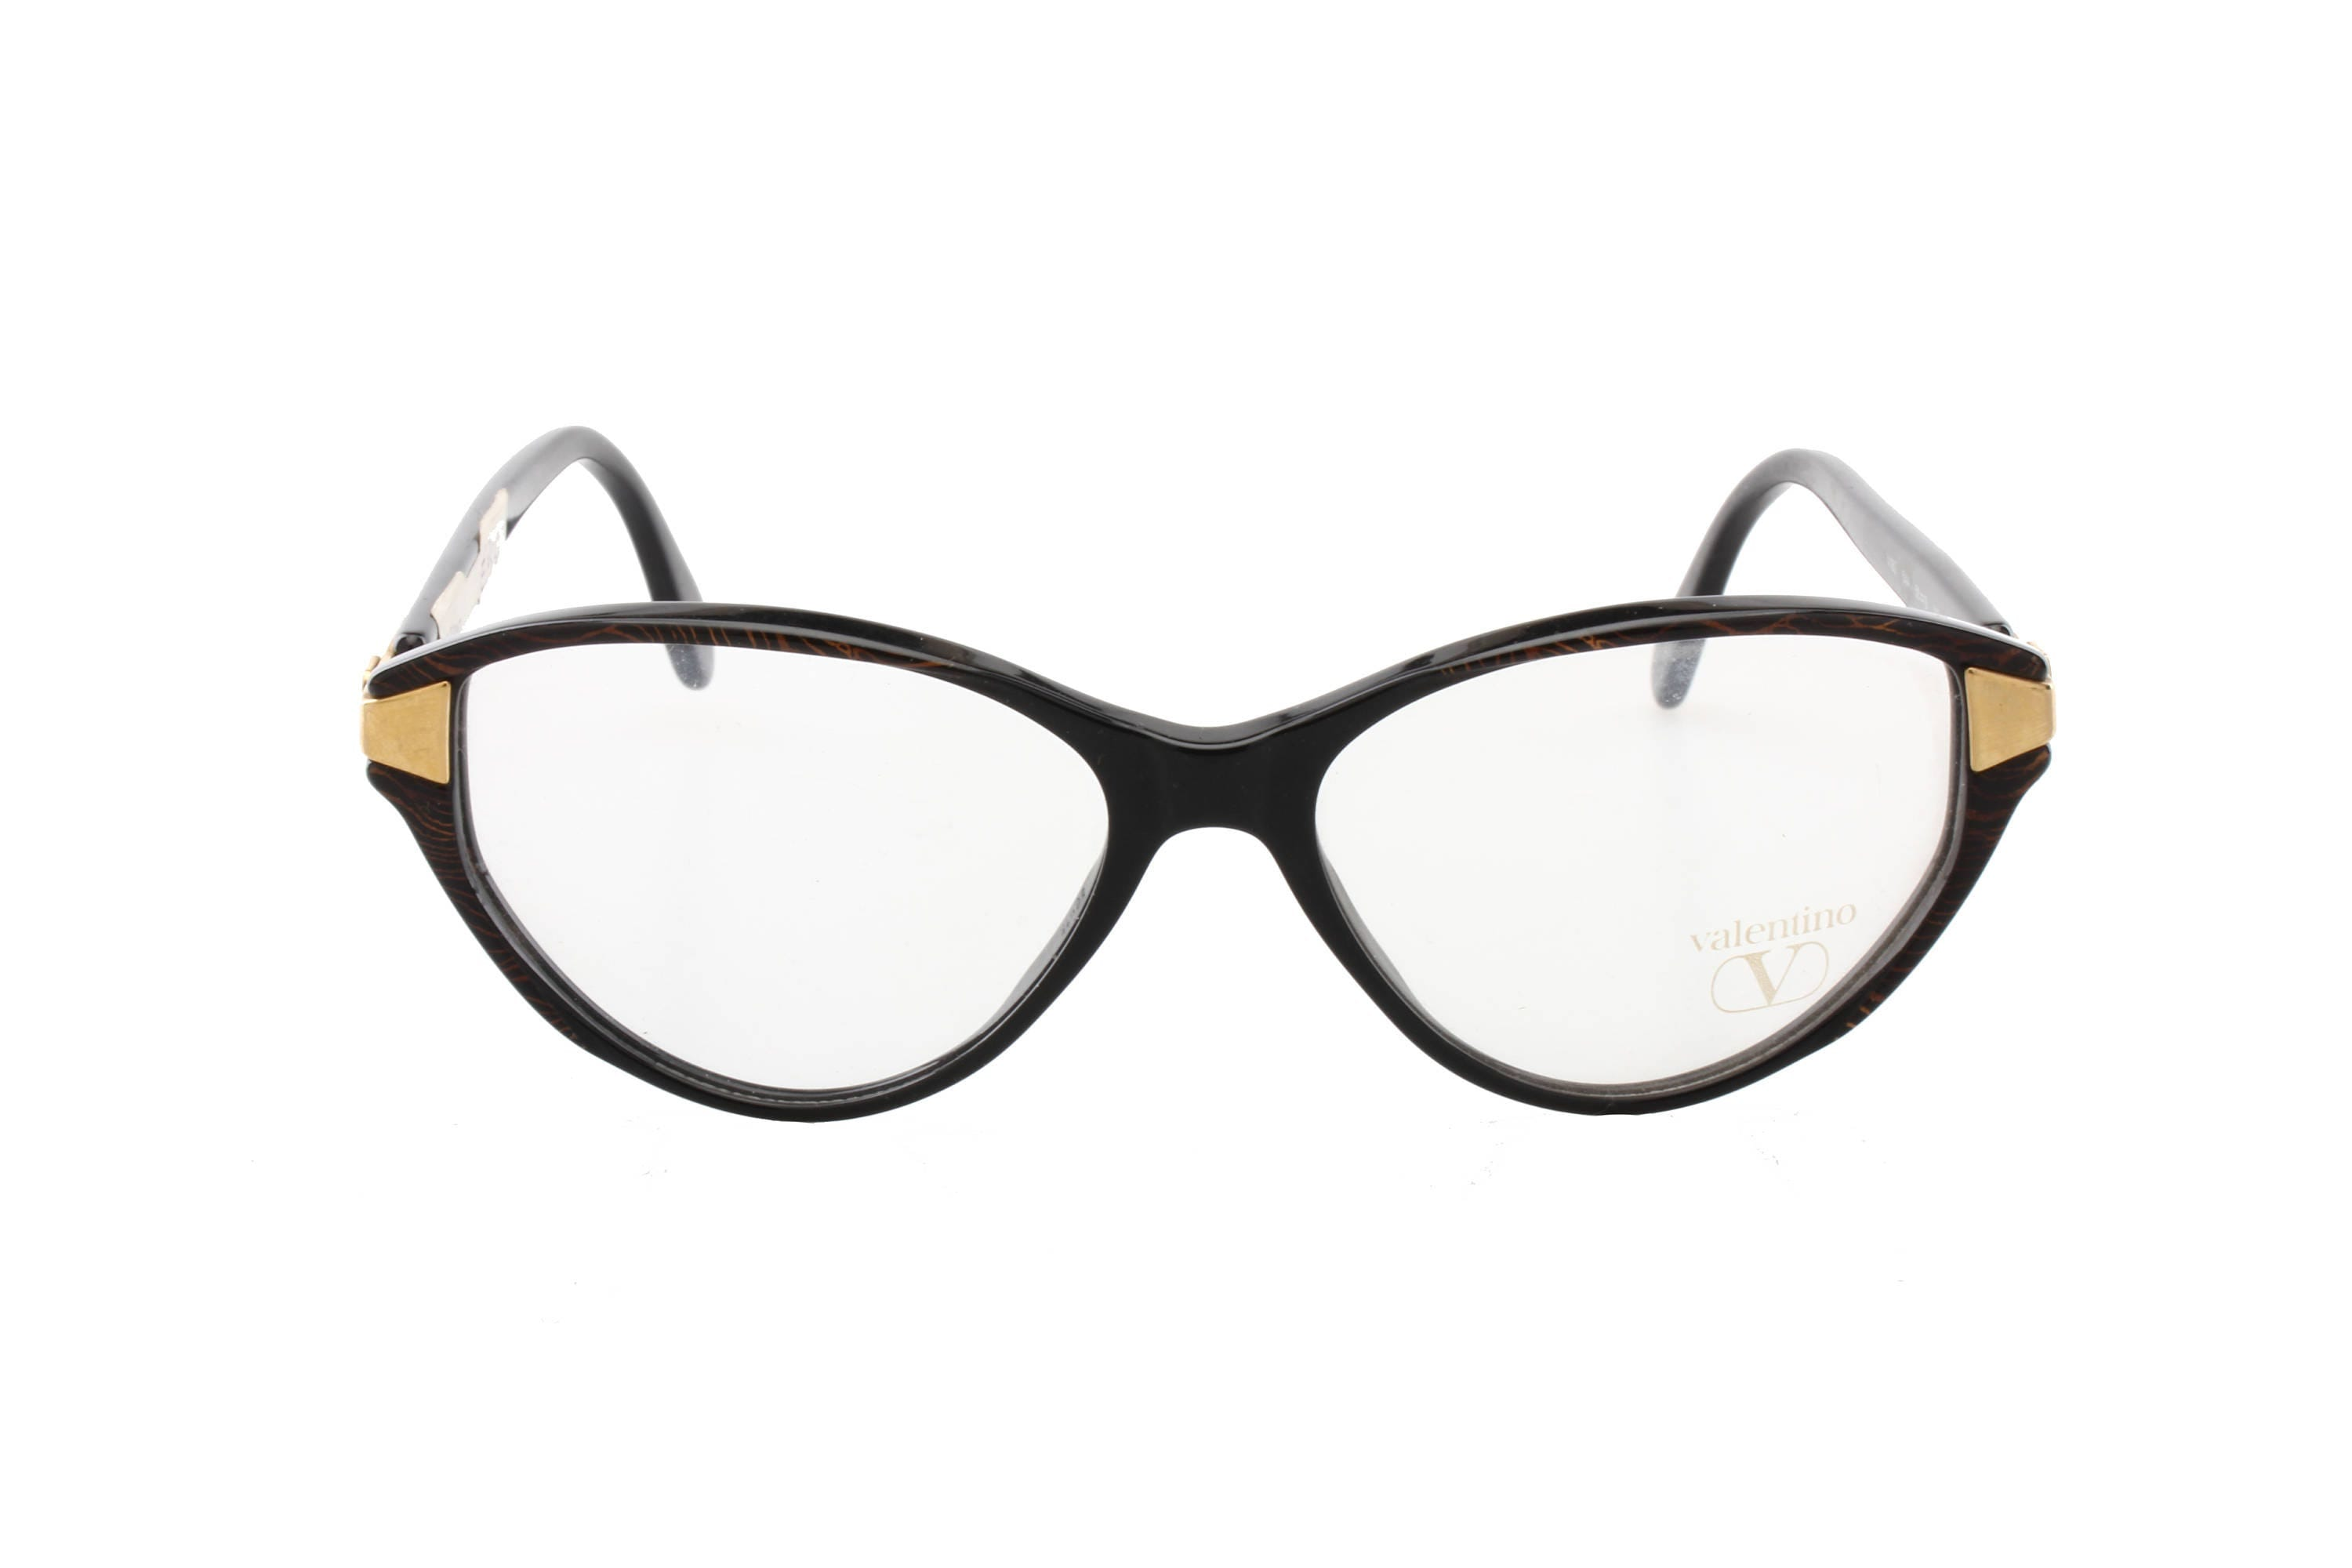 88e8bee0dd Valentino black   gold vintage cateye eyeglasses frames hand made in Italy